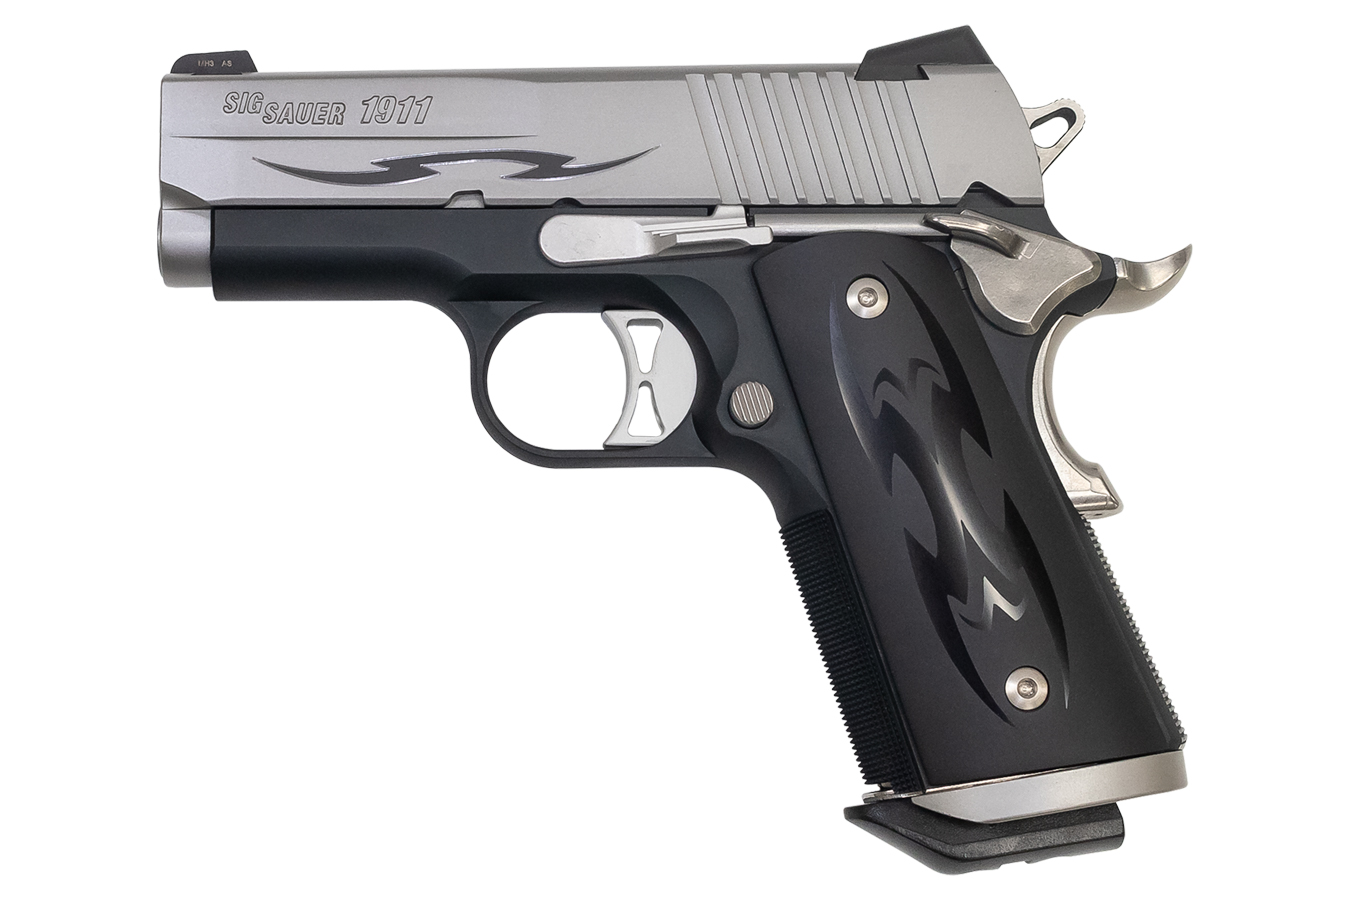 No. 4 Best Selling: SIG SAUER 1911 ULTRA COMPACT 45ACP TRIBAL